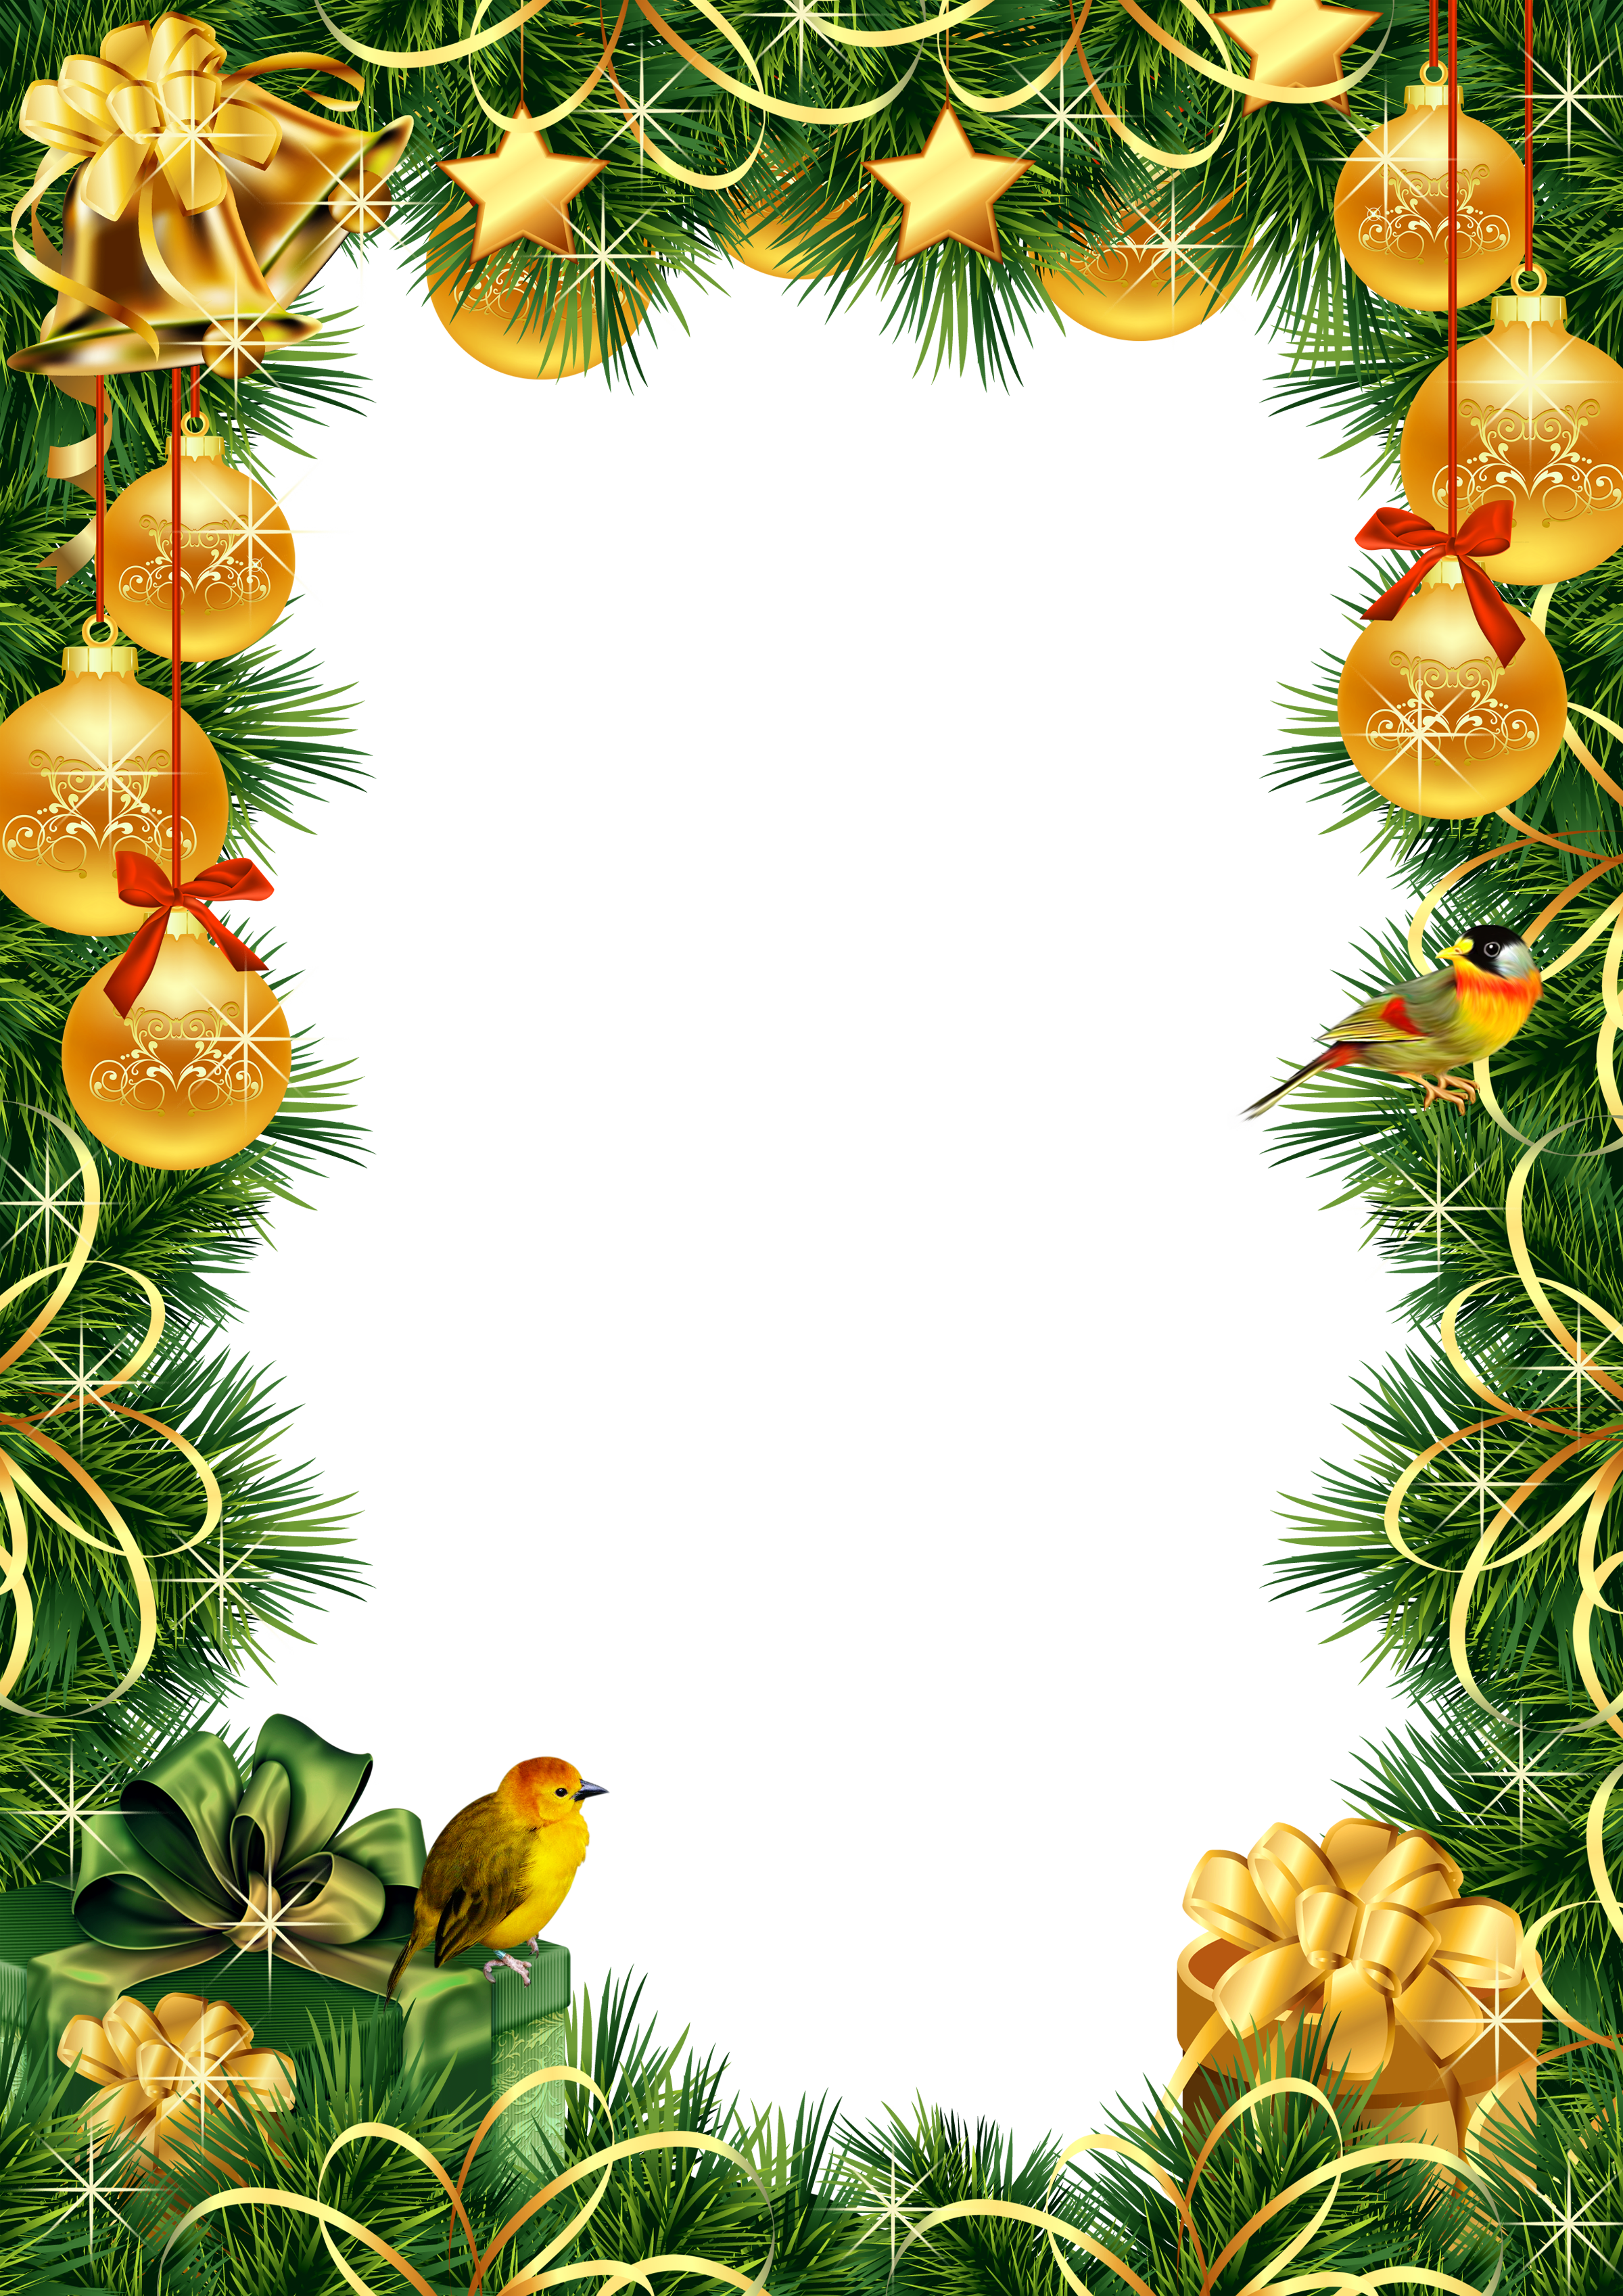 Transparent png photo frame. Christmas borders .png royalty free